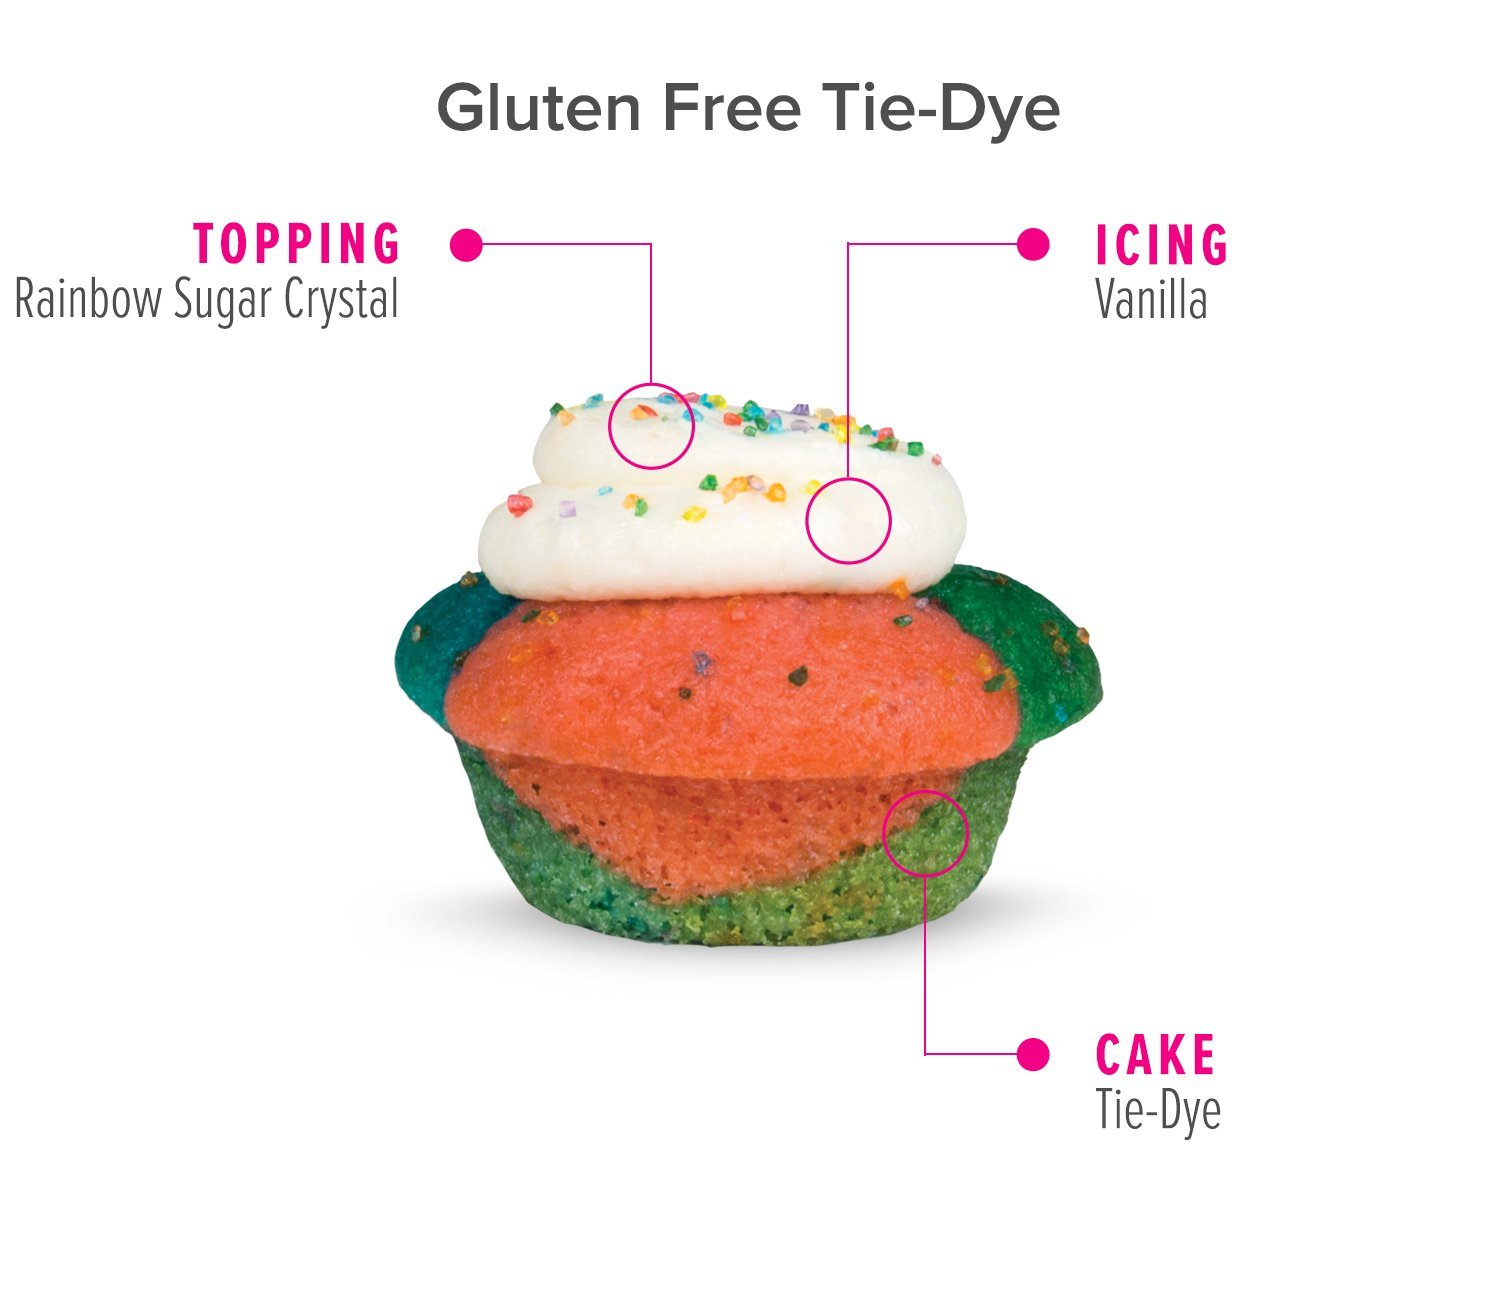 Baked by Melissa Cupcakes The OMGF (Oh My Gluten Free) - Assorted Bite-Size Cupcakes, 100 Count by Baked by Melissa (Image #7)